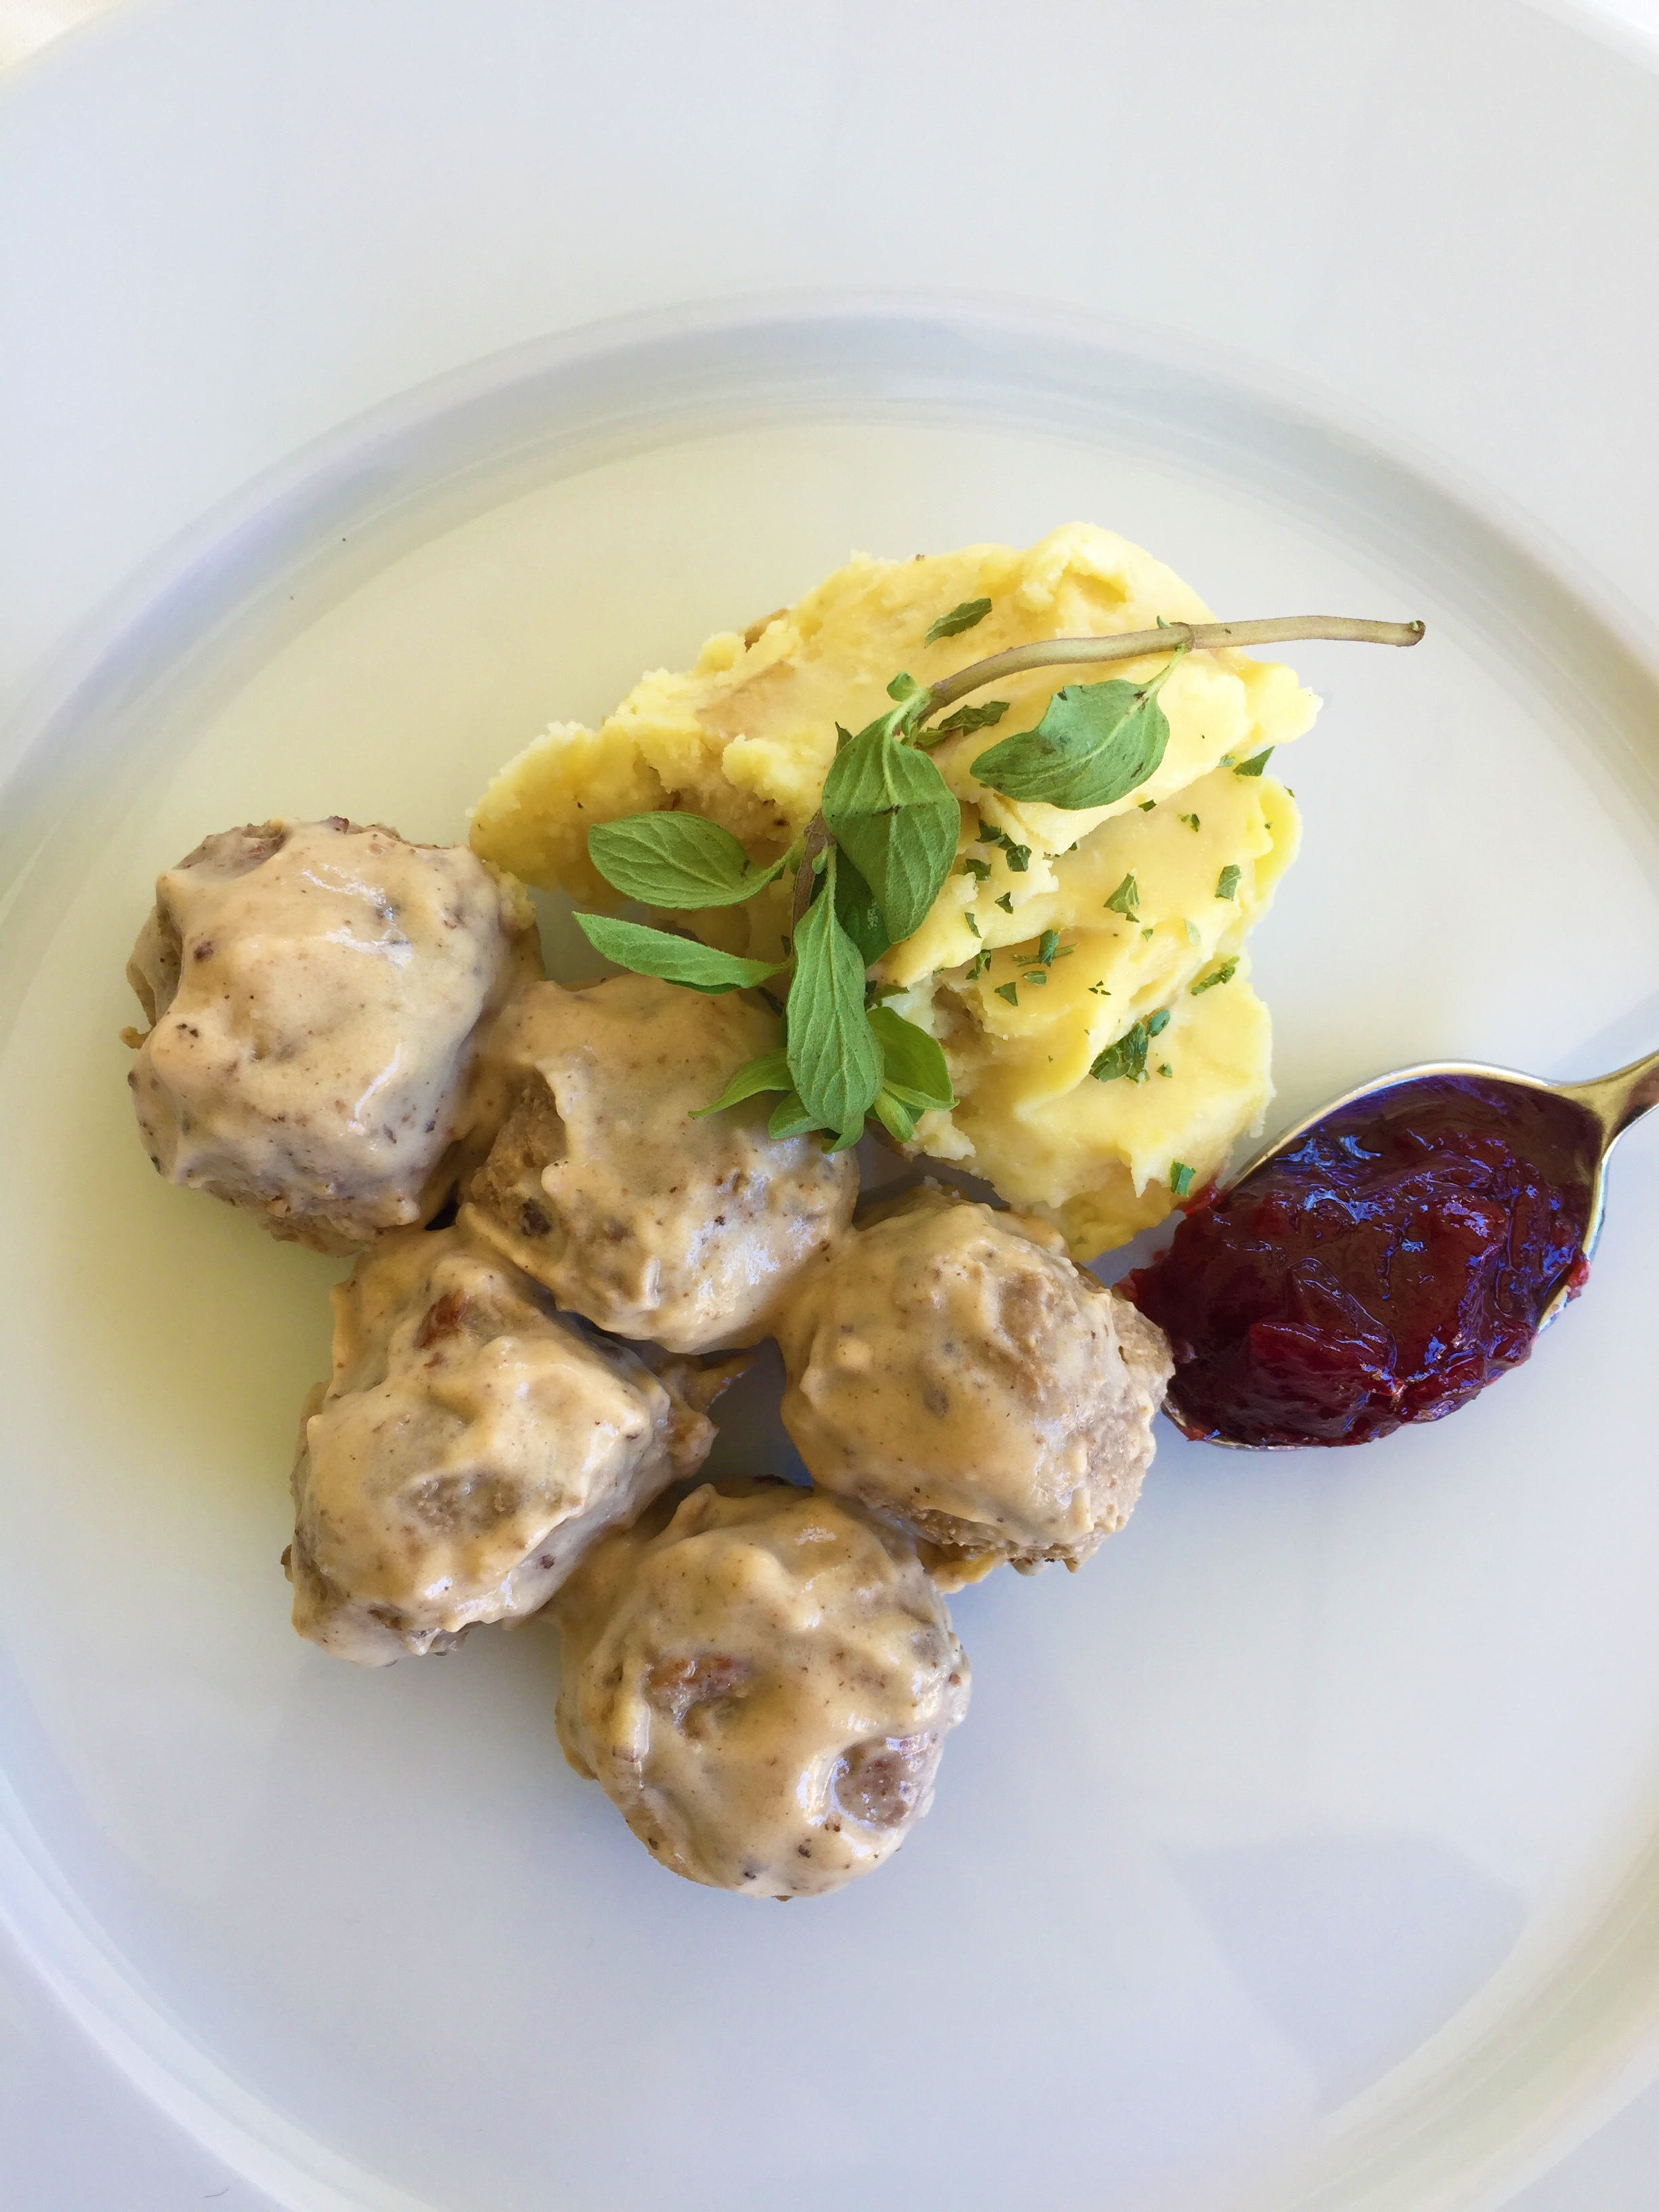 Traditional plating with mashed potatoes and lingonberries.